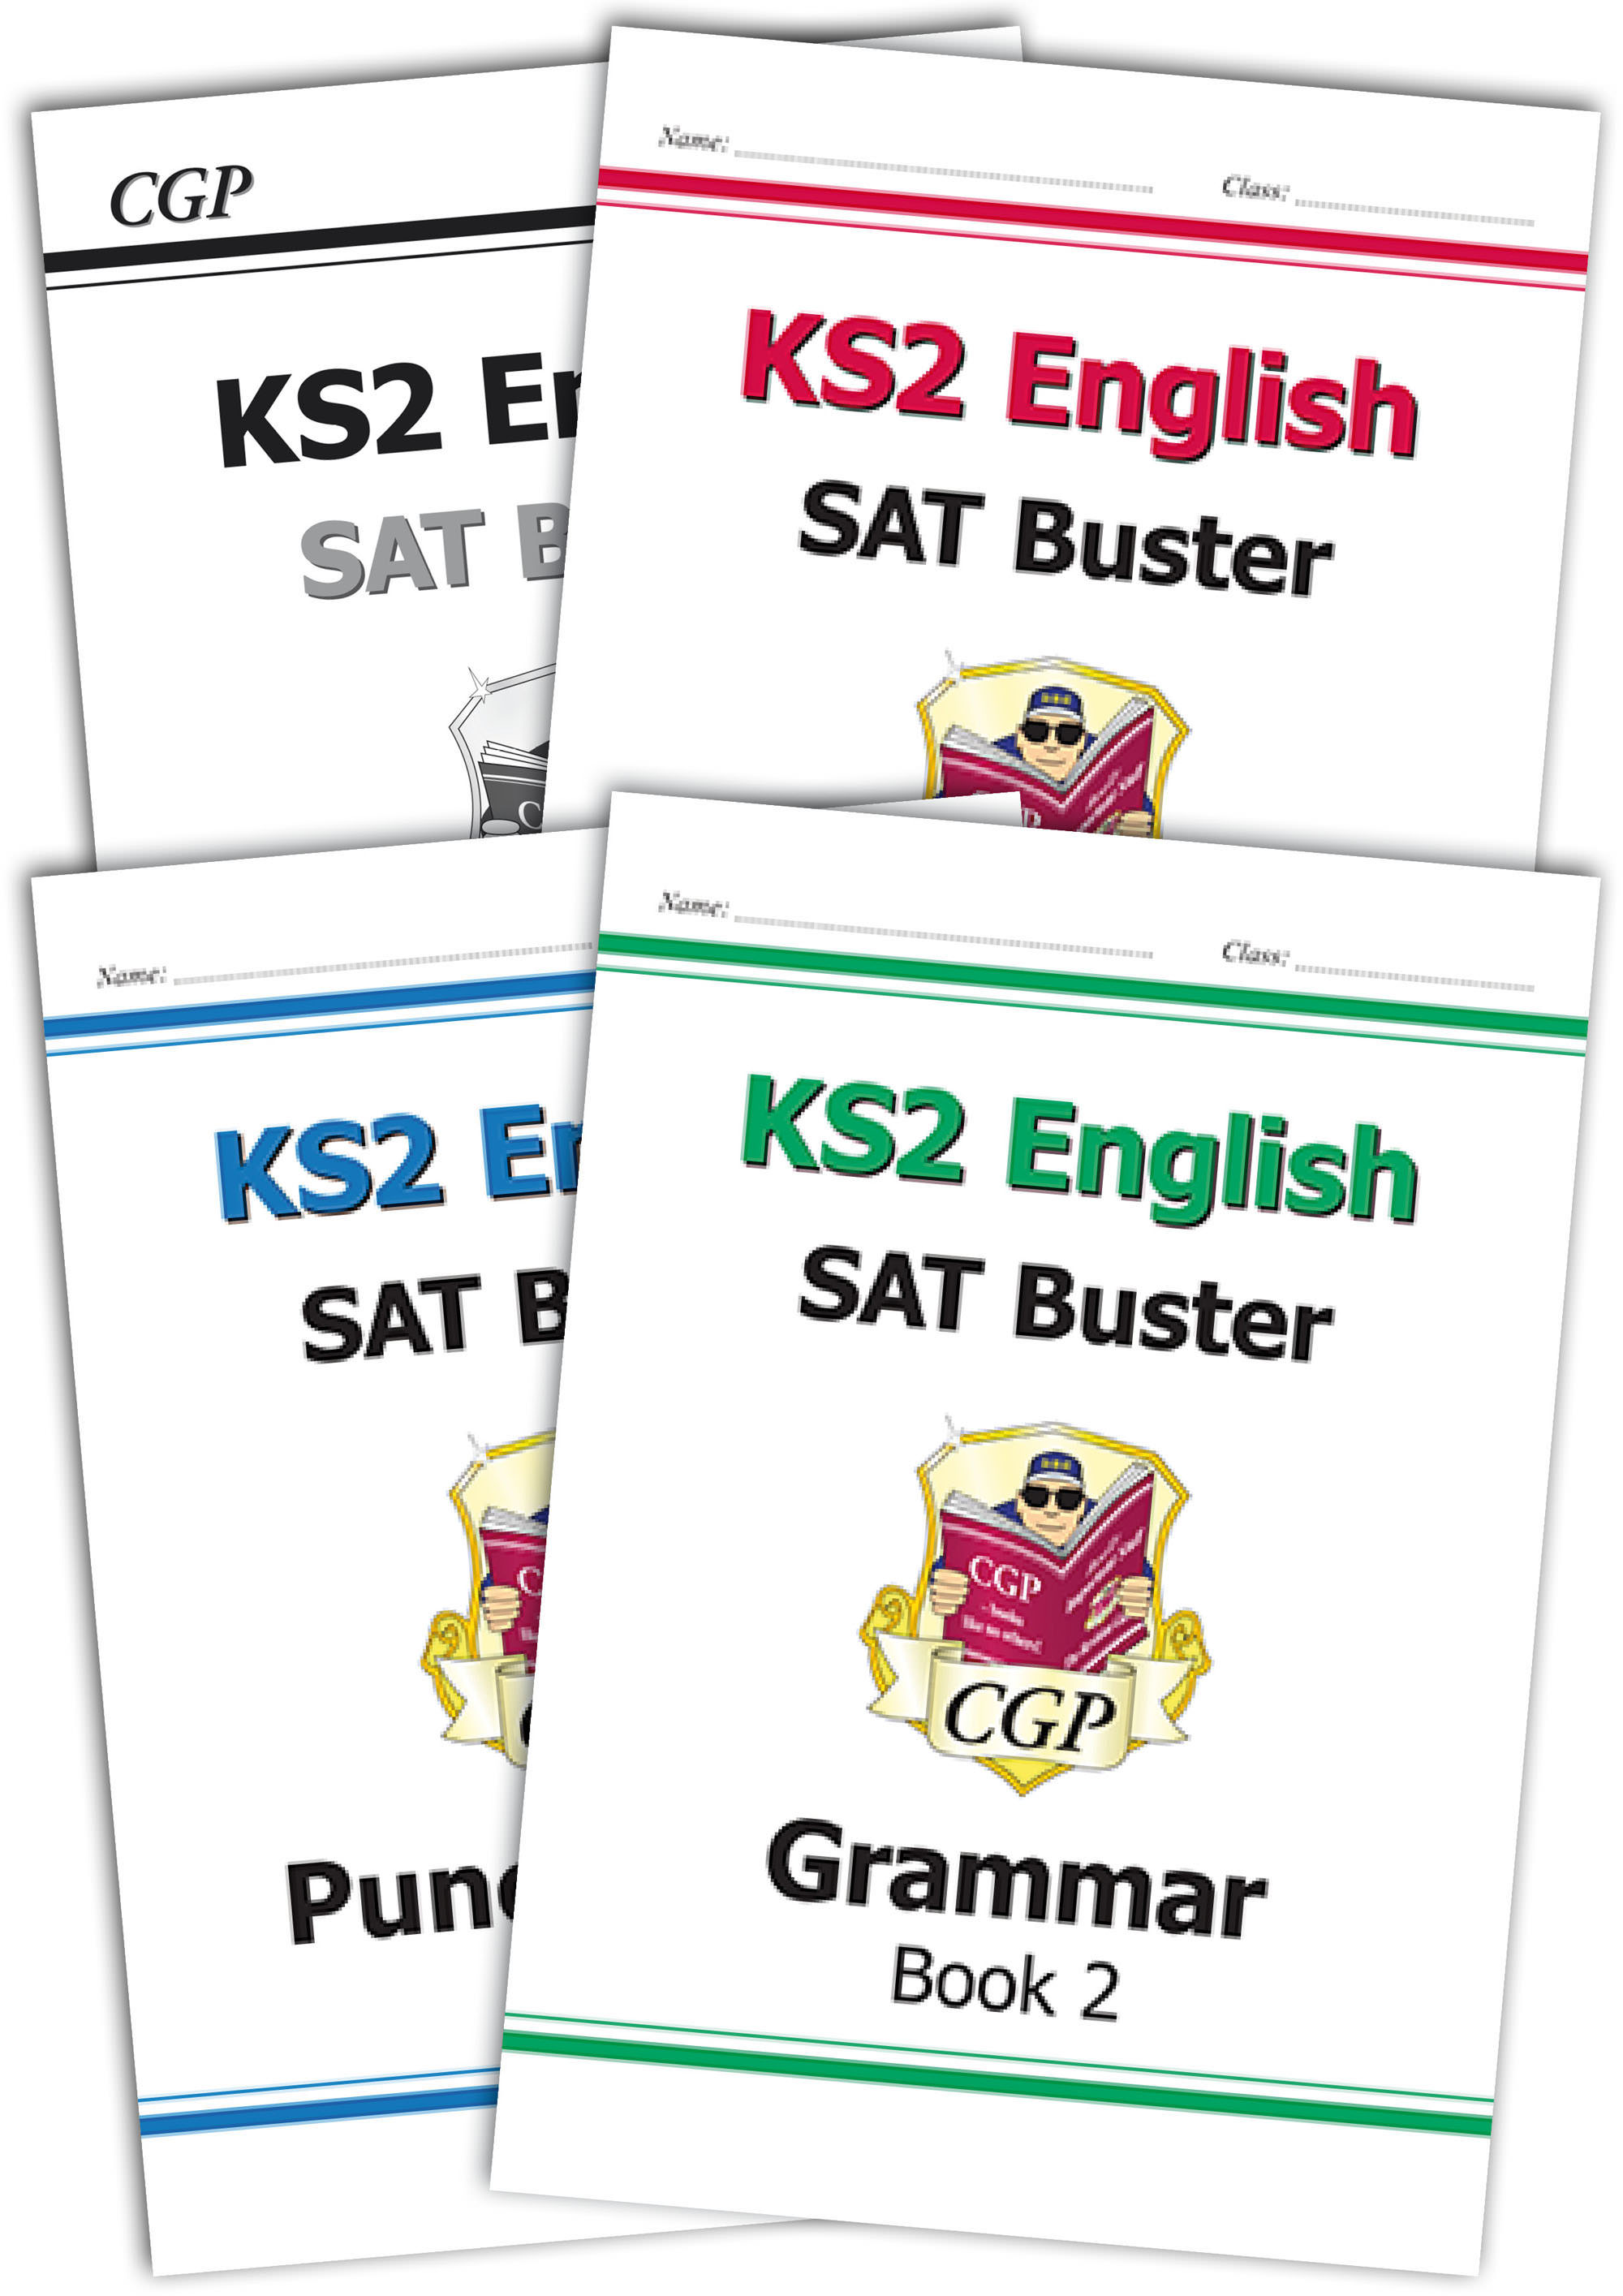 E6GB222 - The Complete KS2 English SPaG SAT Buster Book 2 Bundle - incl answers (for the 2019 tests)